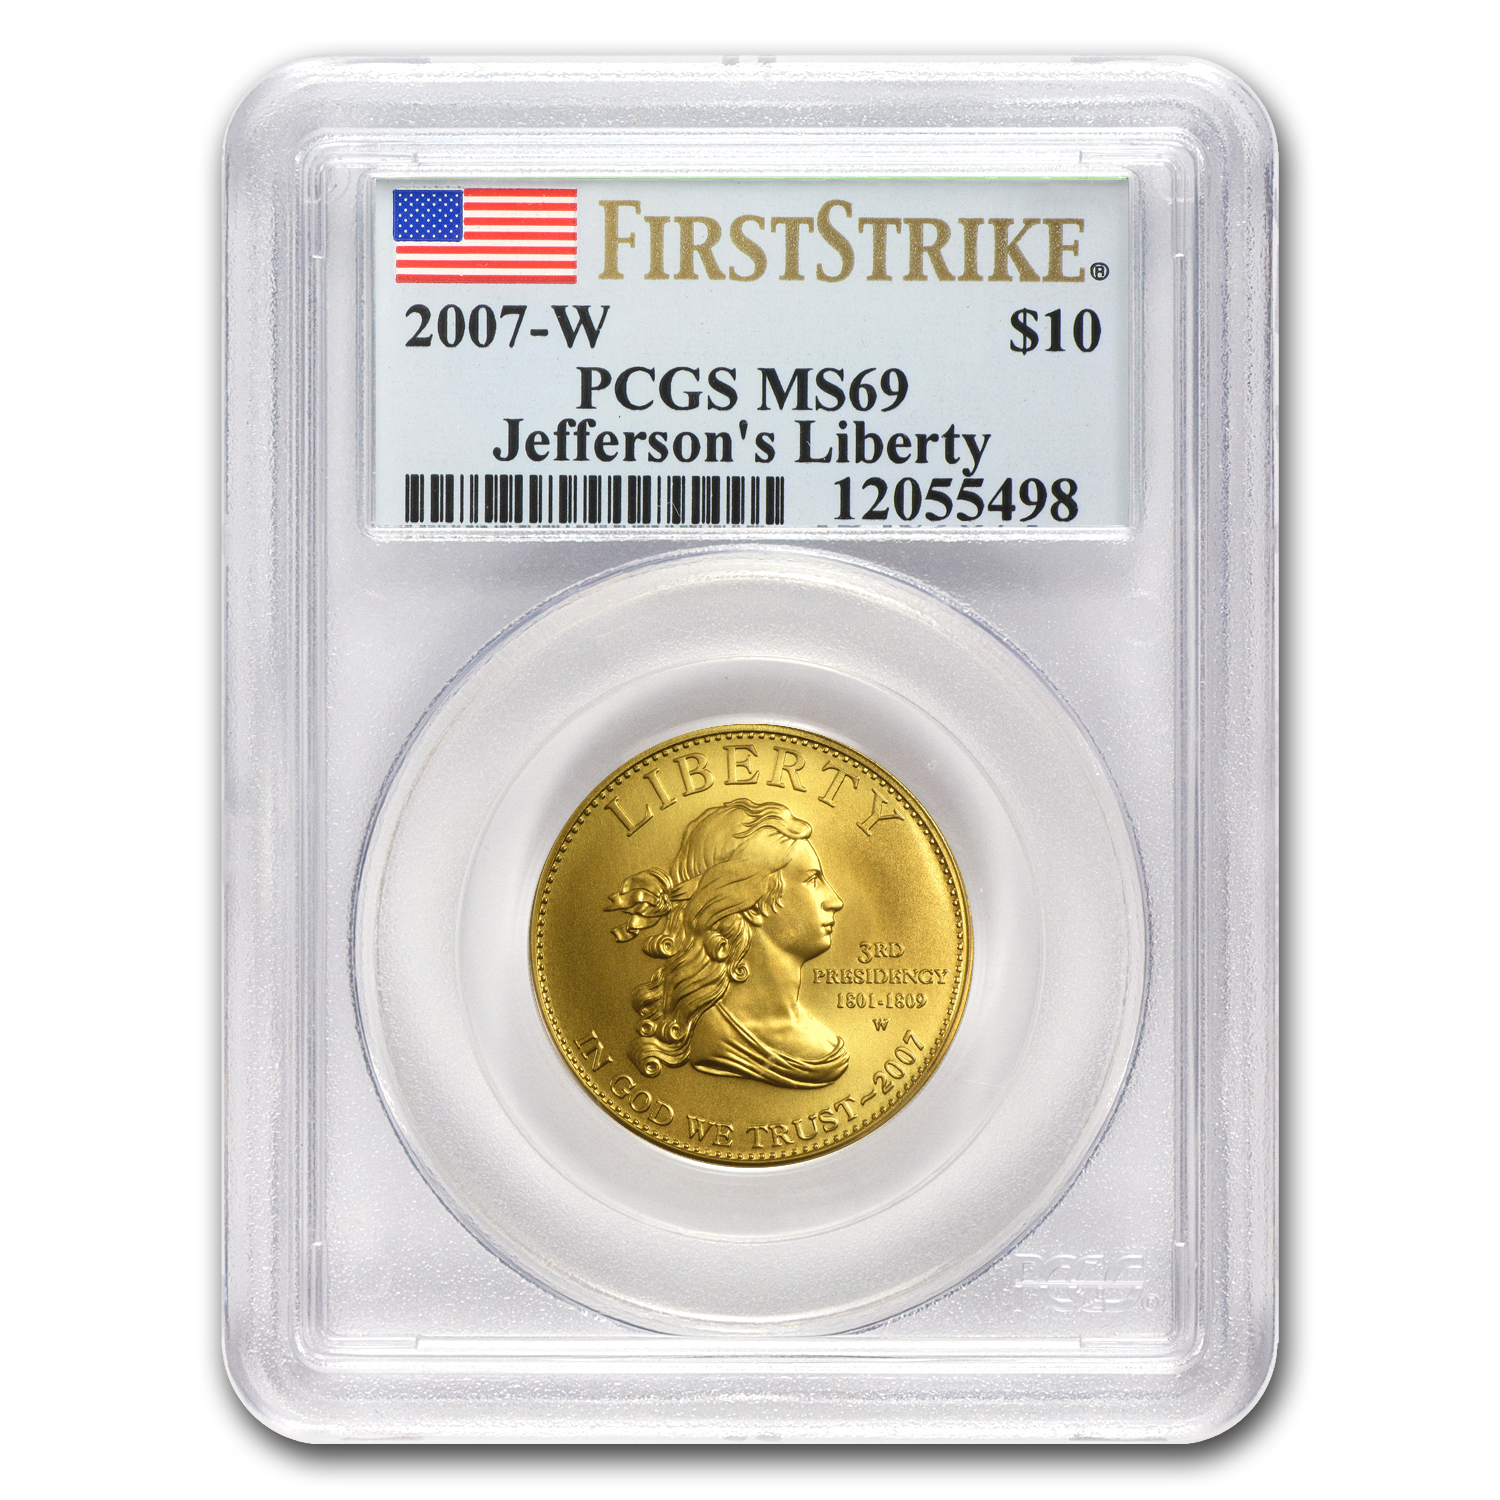 2007-W 1/2 oz Gold Jefferson's Liberty MS-69 PCGS (First Strike)